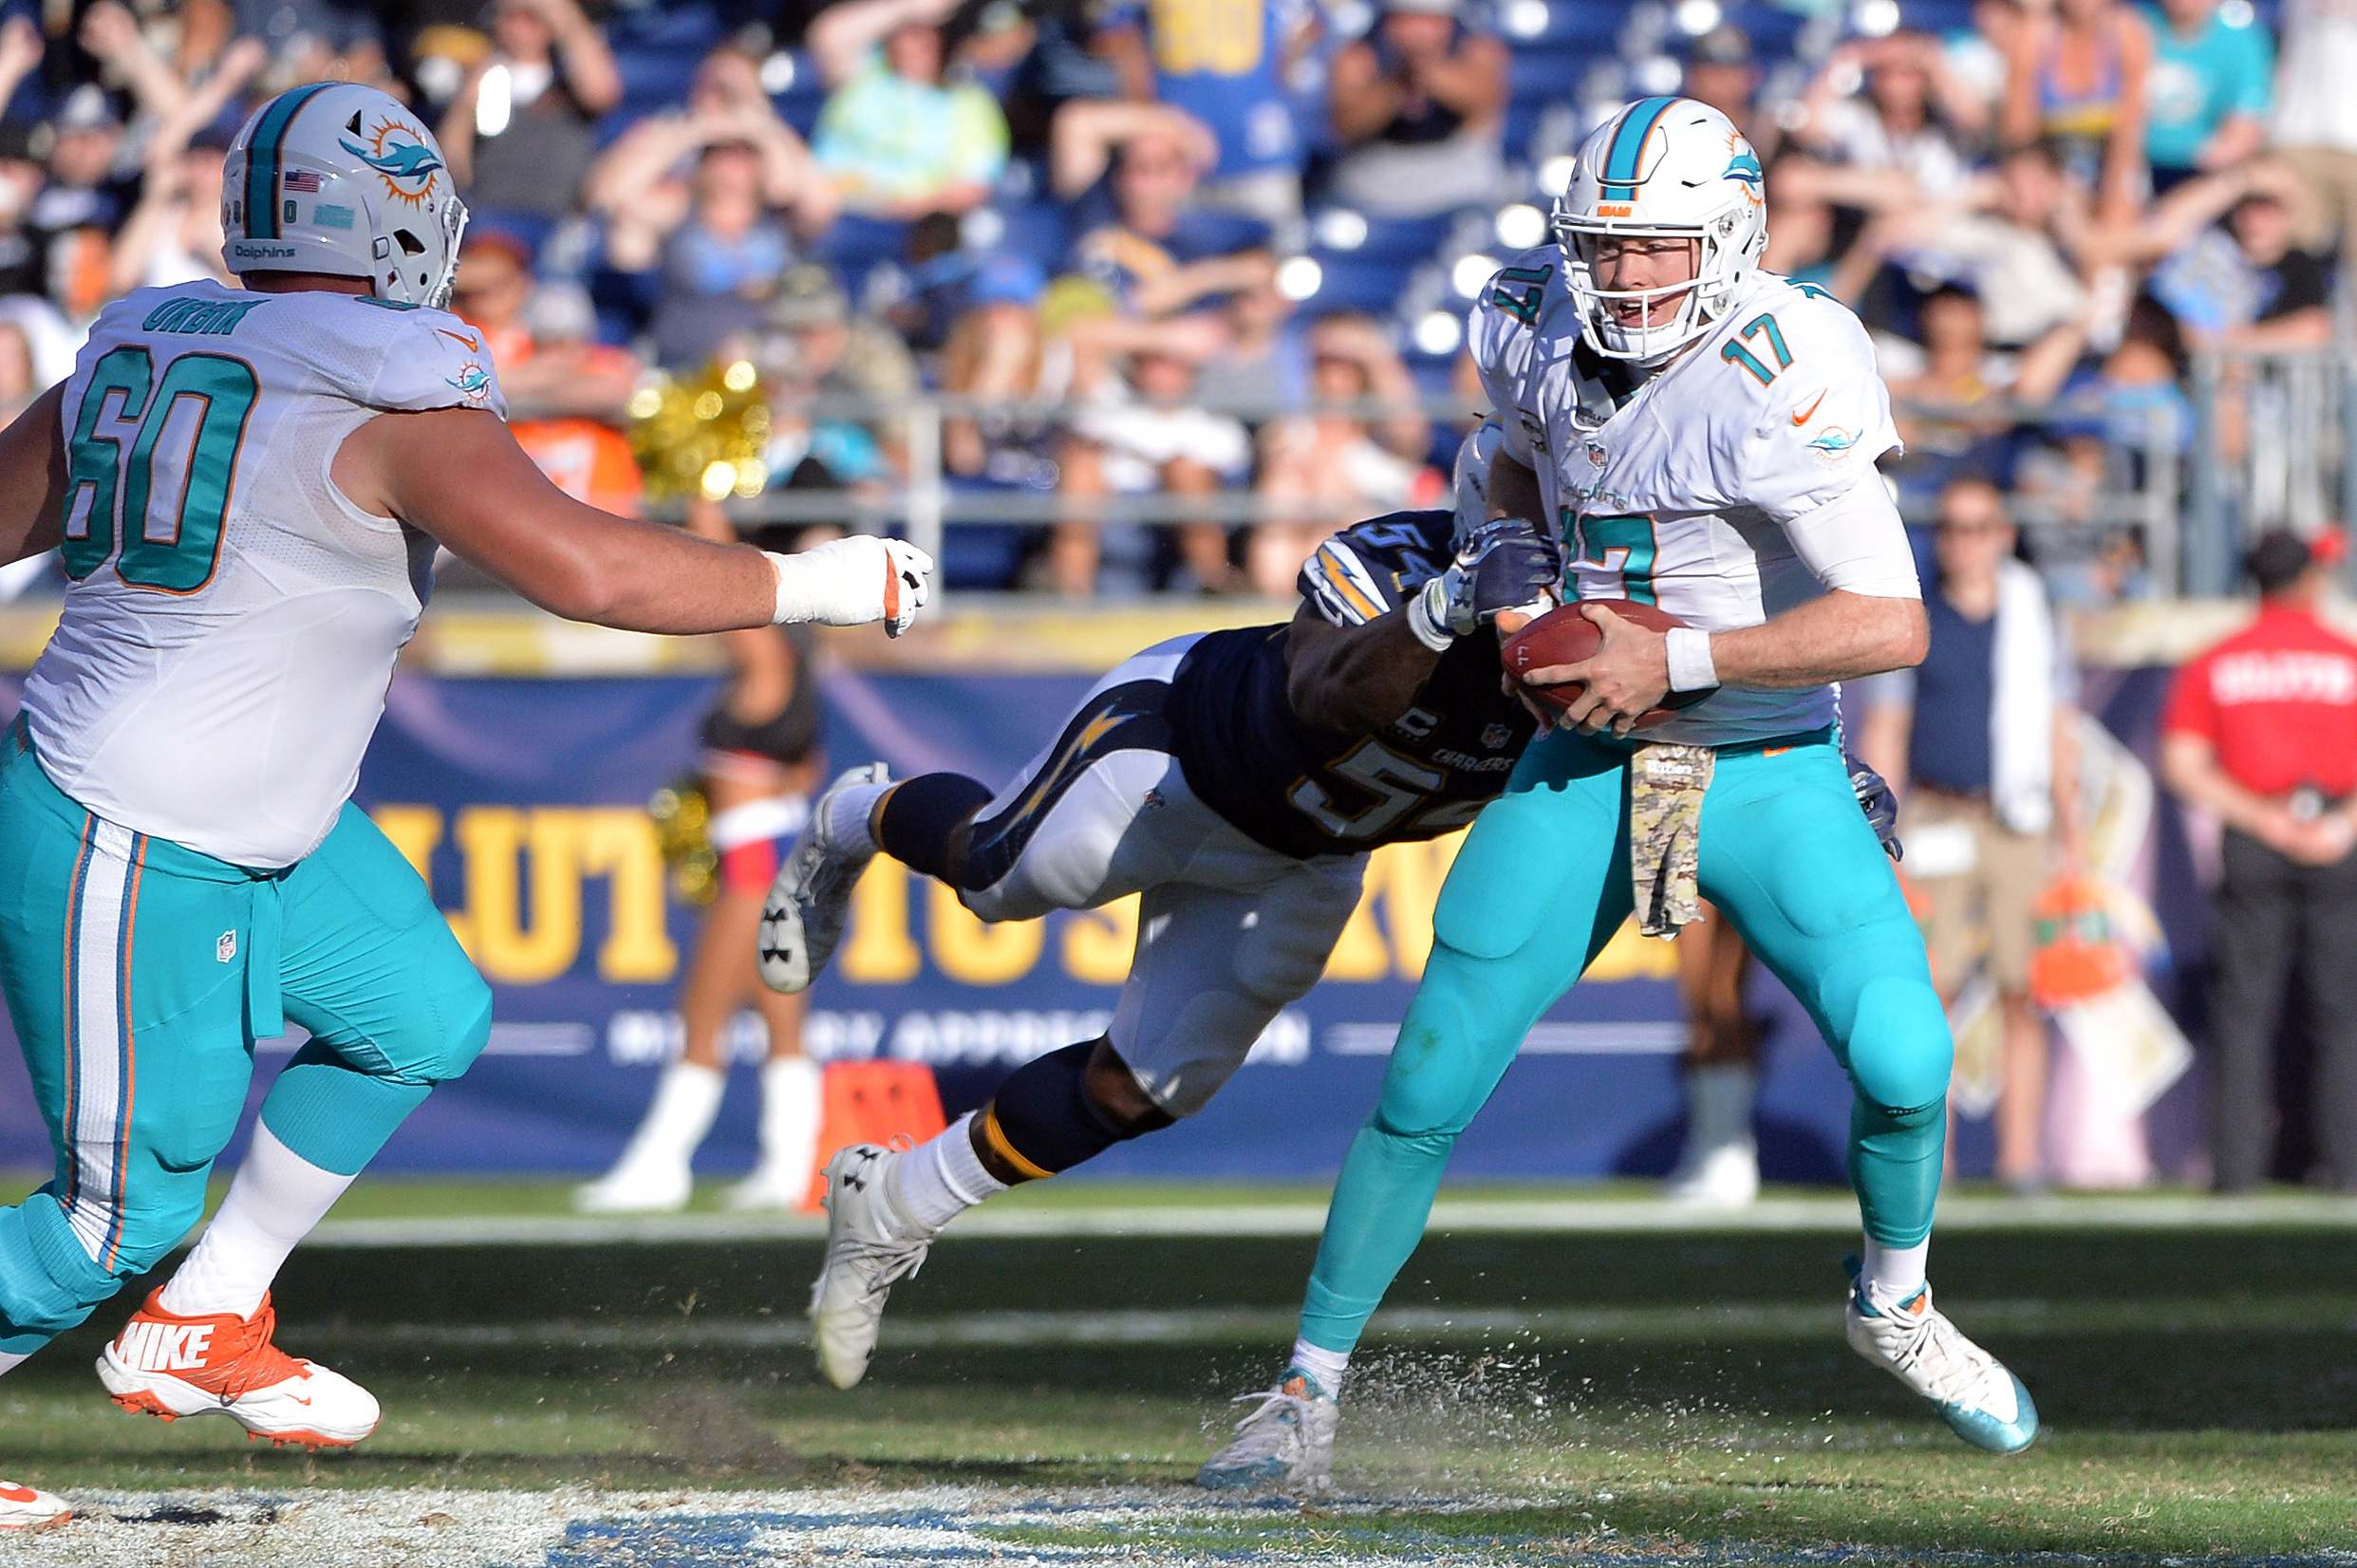 9675598-nfl-miami-dolphins-at-san-diego-chargers